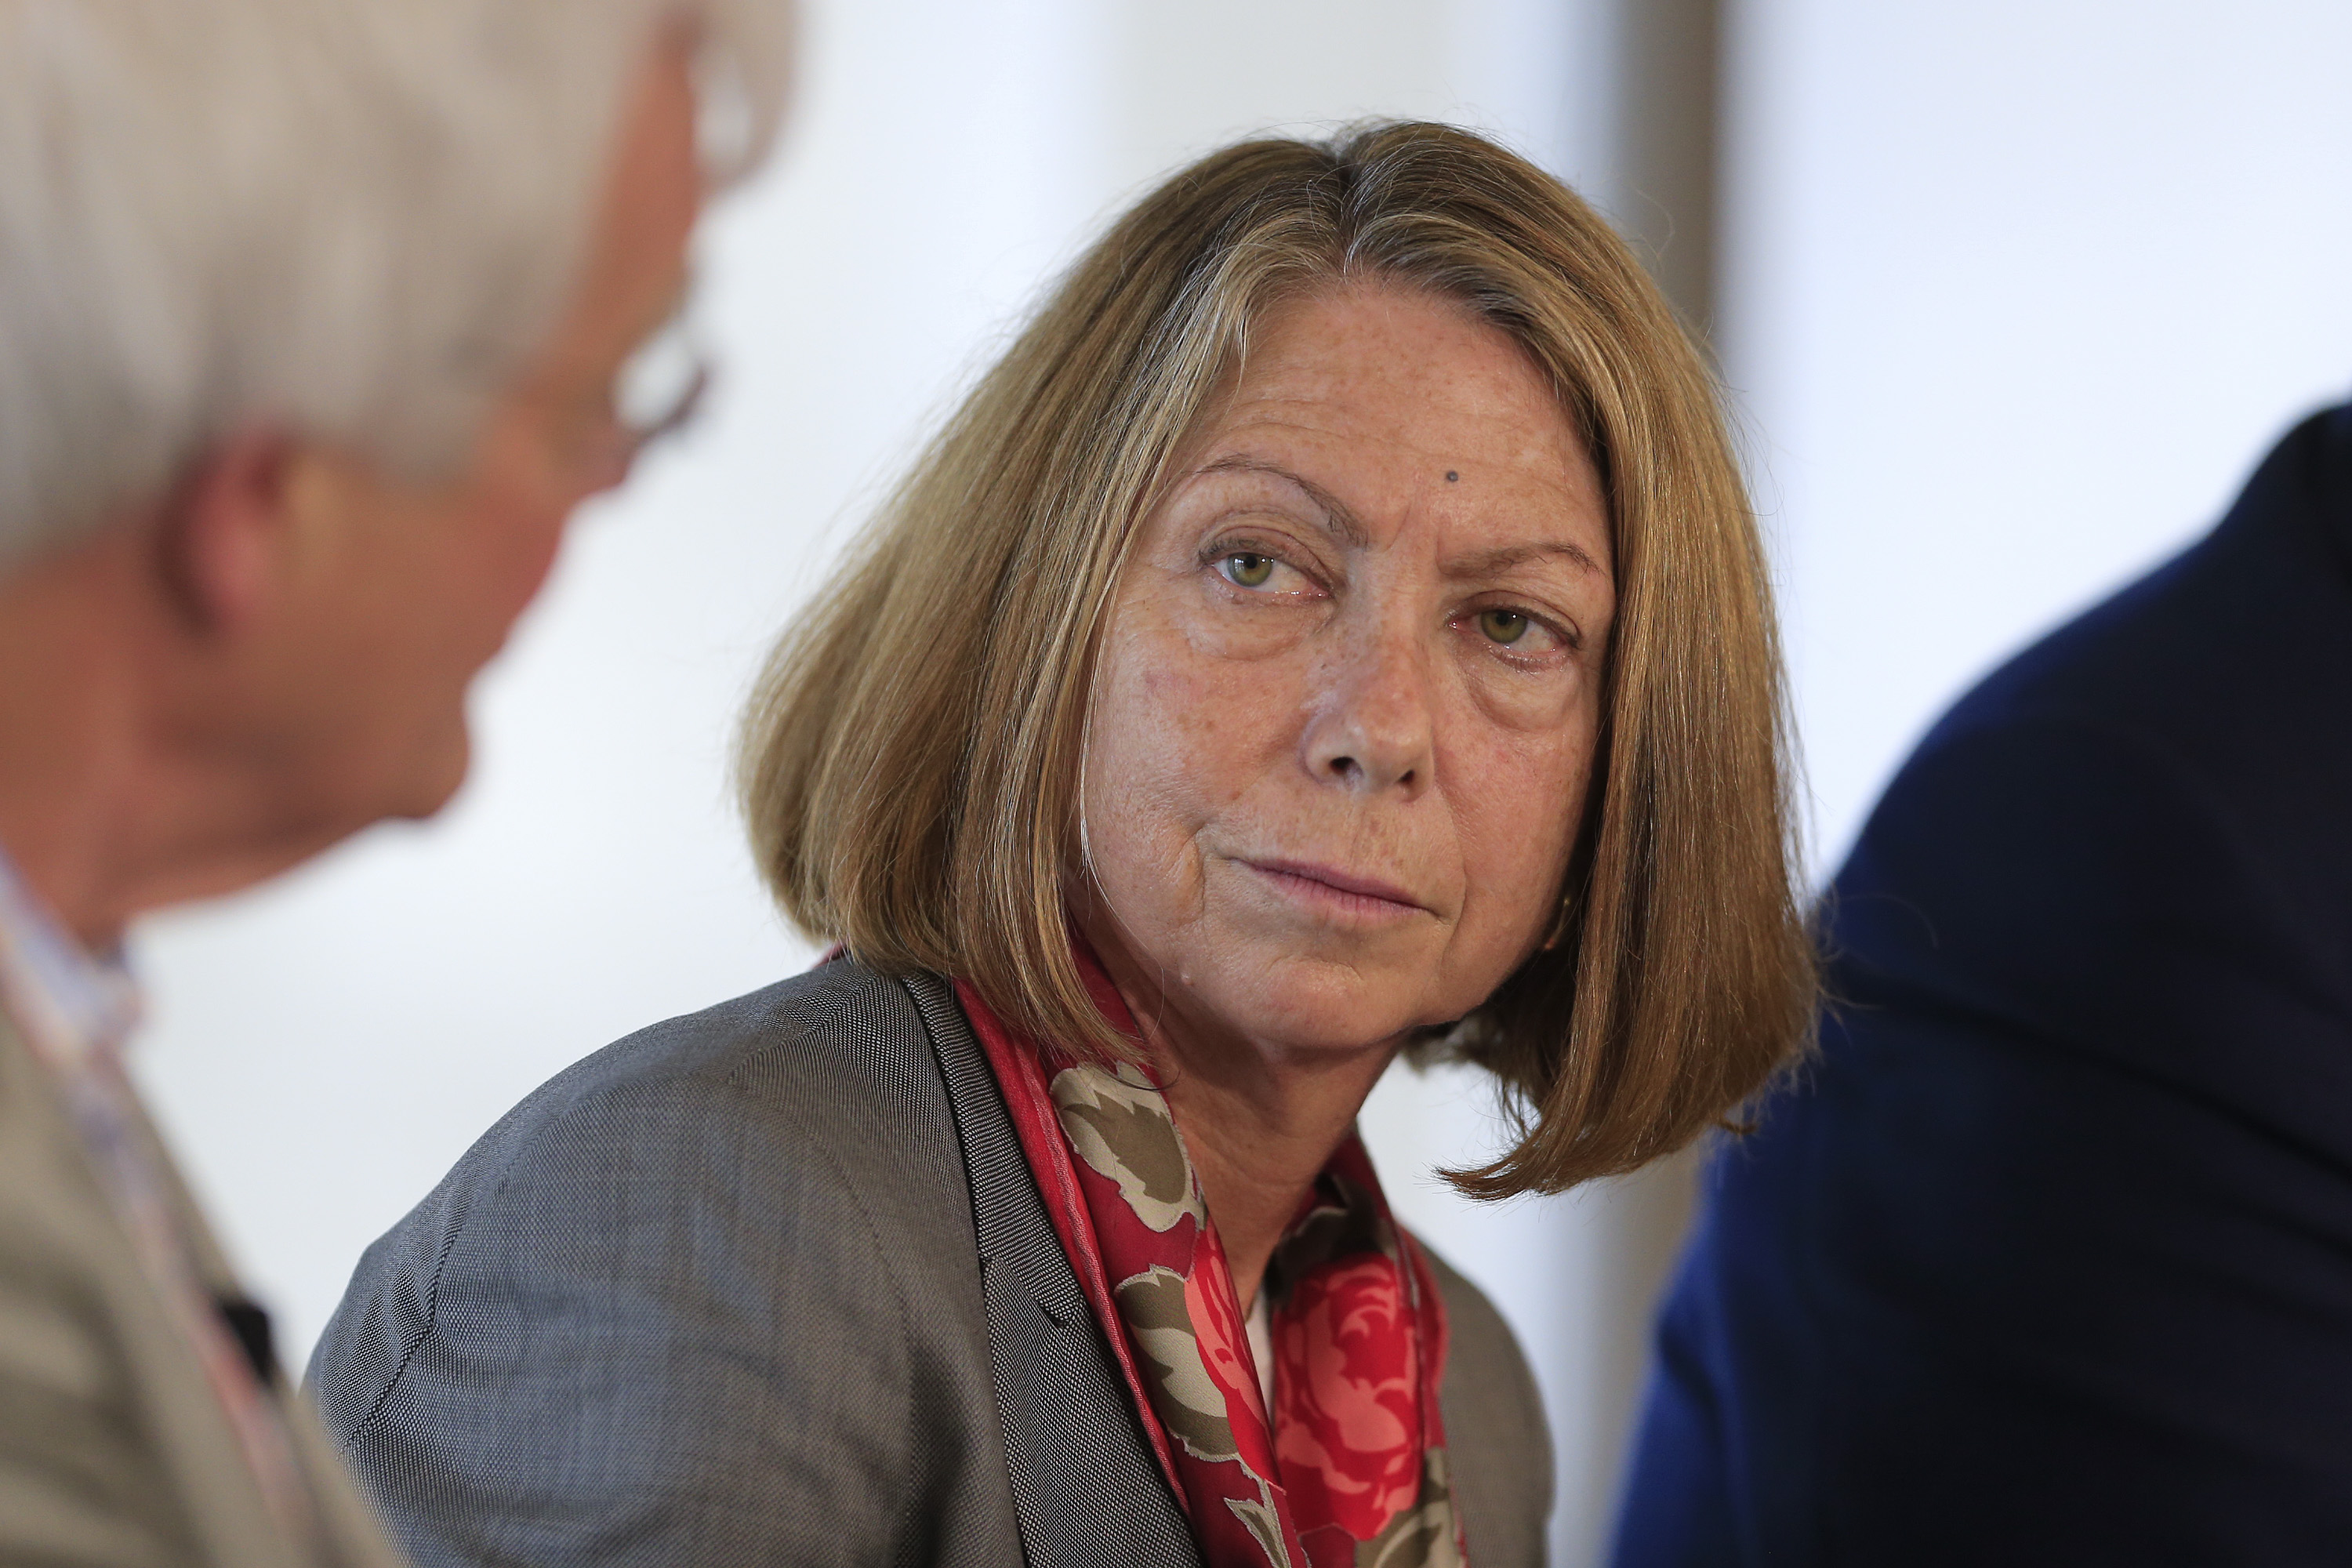 Jill Abramson, executive editor of The New York Times, listens during a panel discussion on the sidelines of the Republican National Convention (RNC) in Tampa on Aug. 26, 2012.